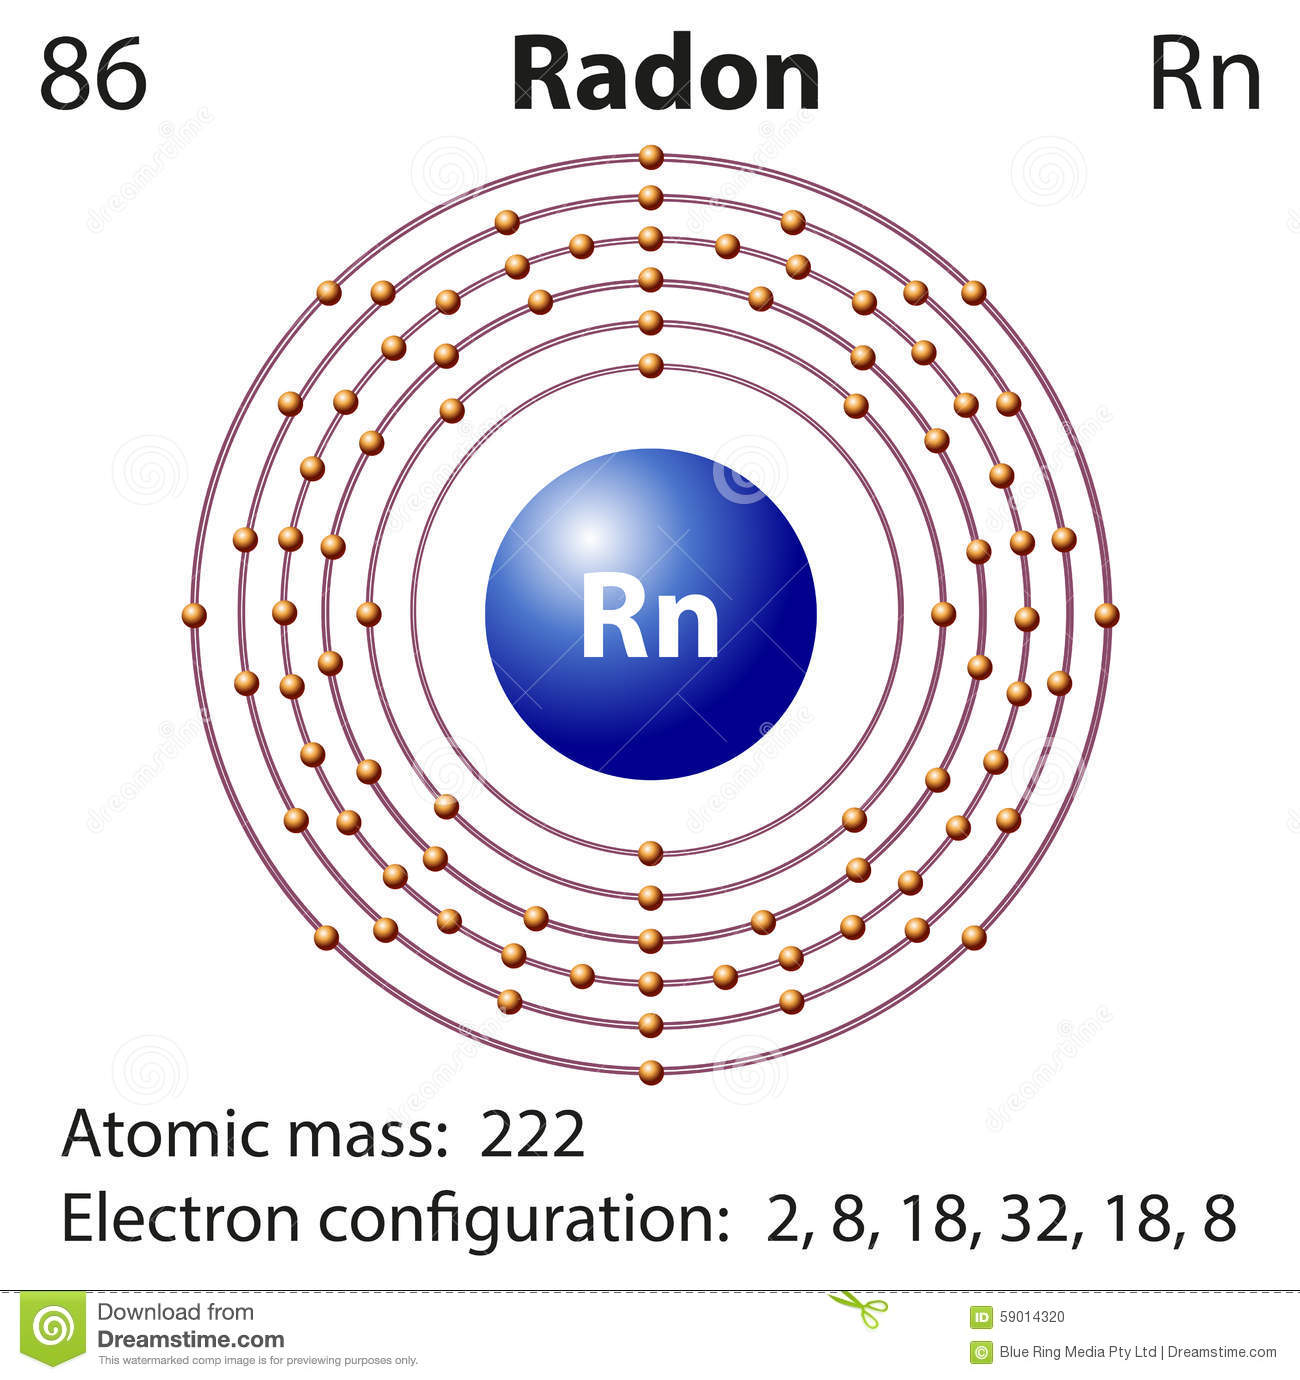 diagram representation element radon illustration 59014320 diagram representation of the element radon stock illustration radian diagram at bayanpartner.co